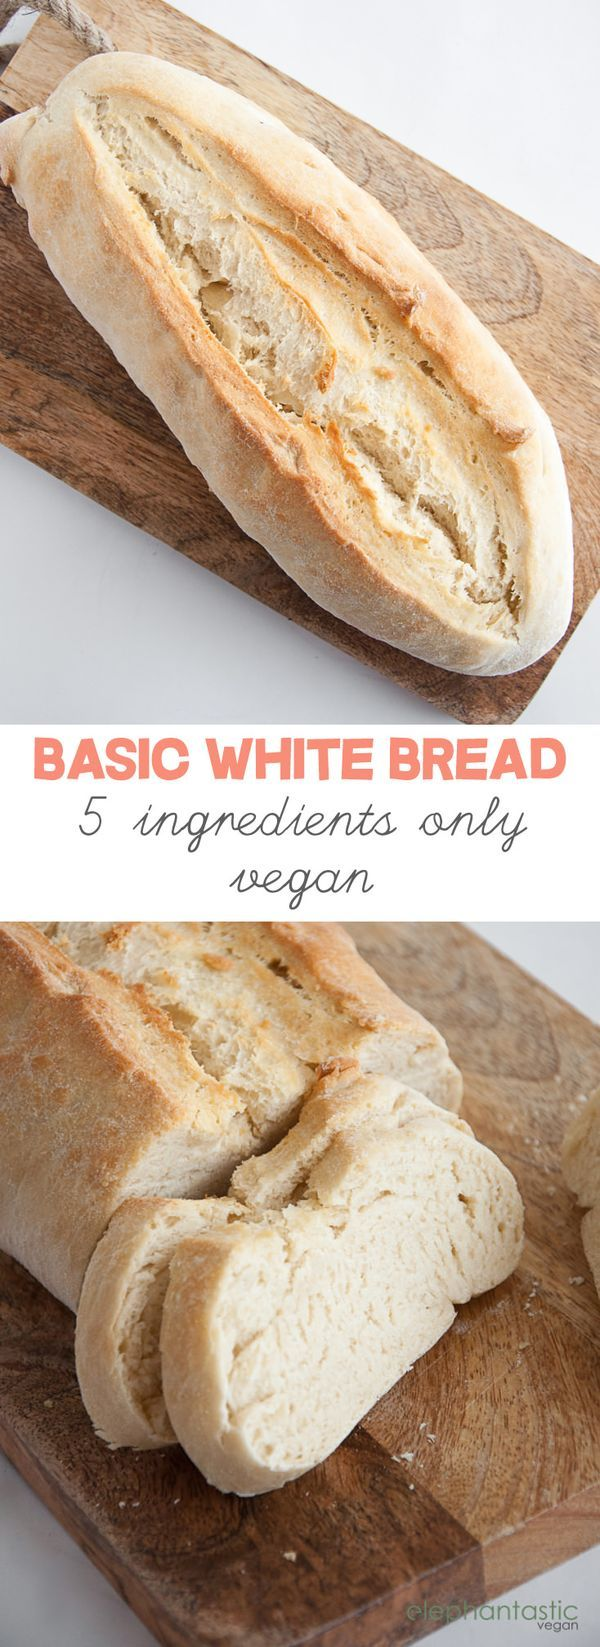 1 package Active dry yeast. 4 cups All-purpose flour. 3/4 tsp Salt. 1 tbsp Olive oil. 1 1/4 cups Water.